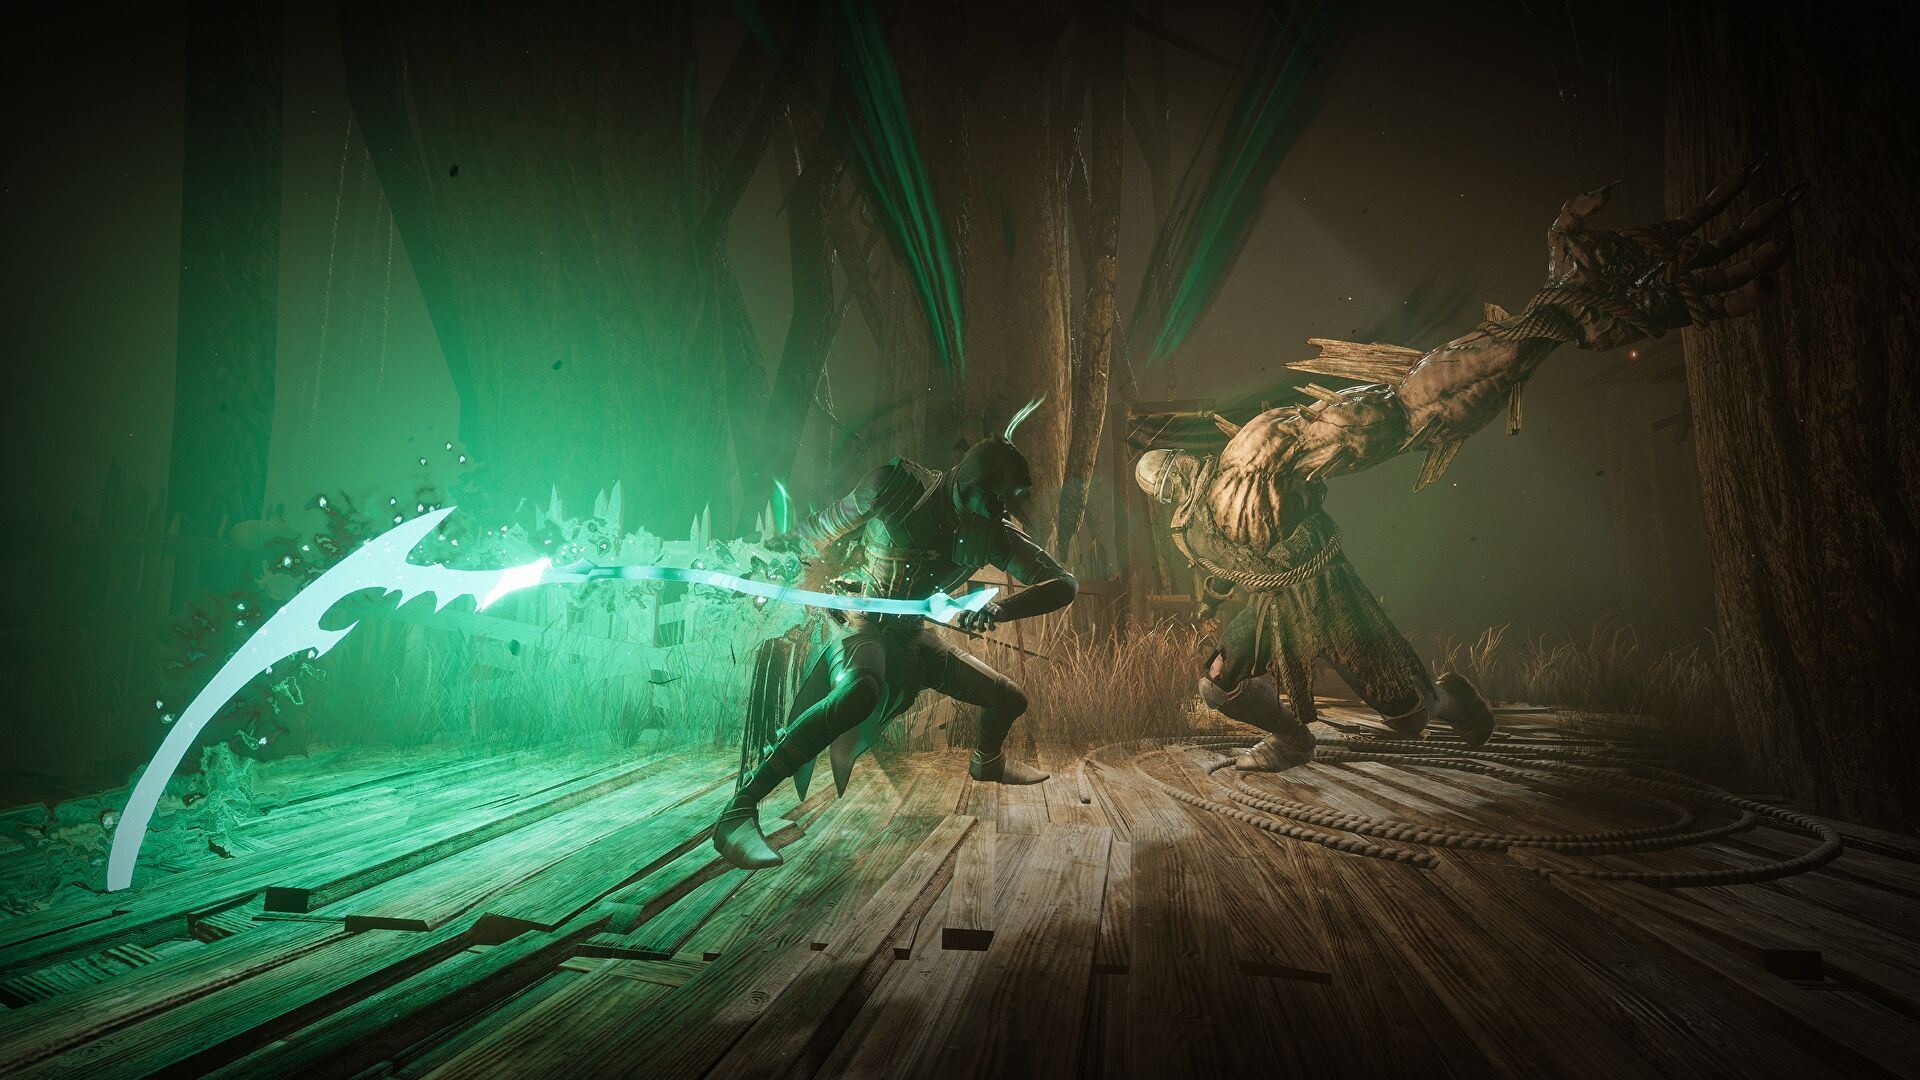 Thymesia is a gloomy action RPG with zippy melee combat